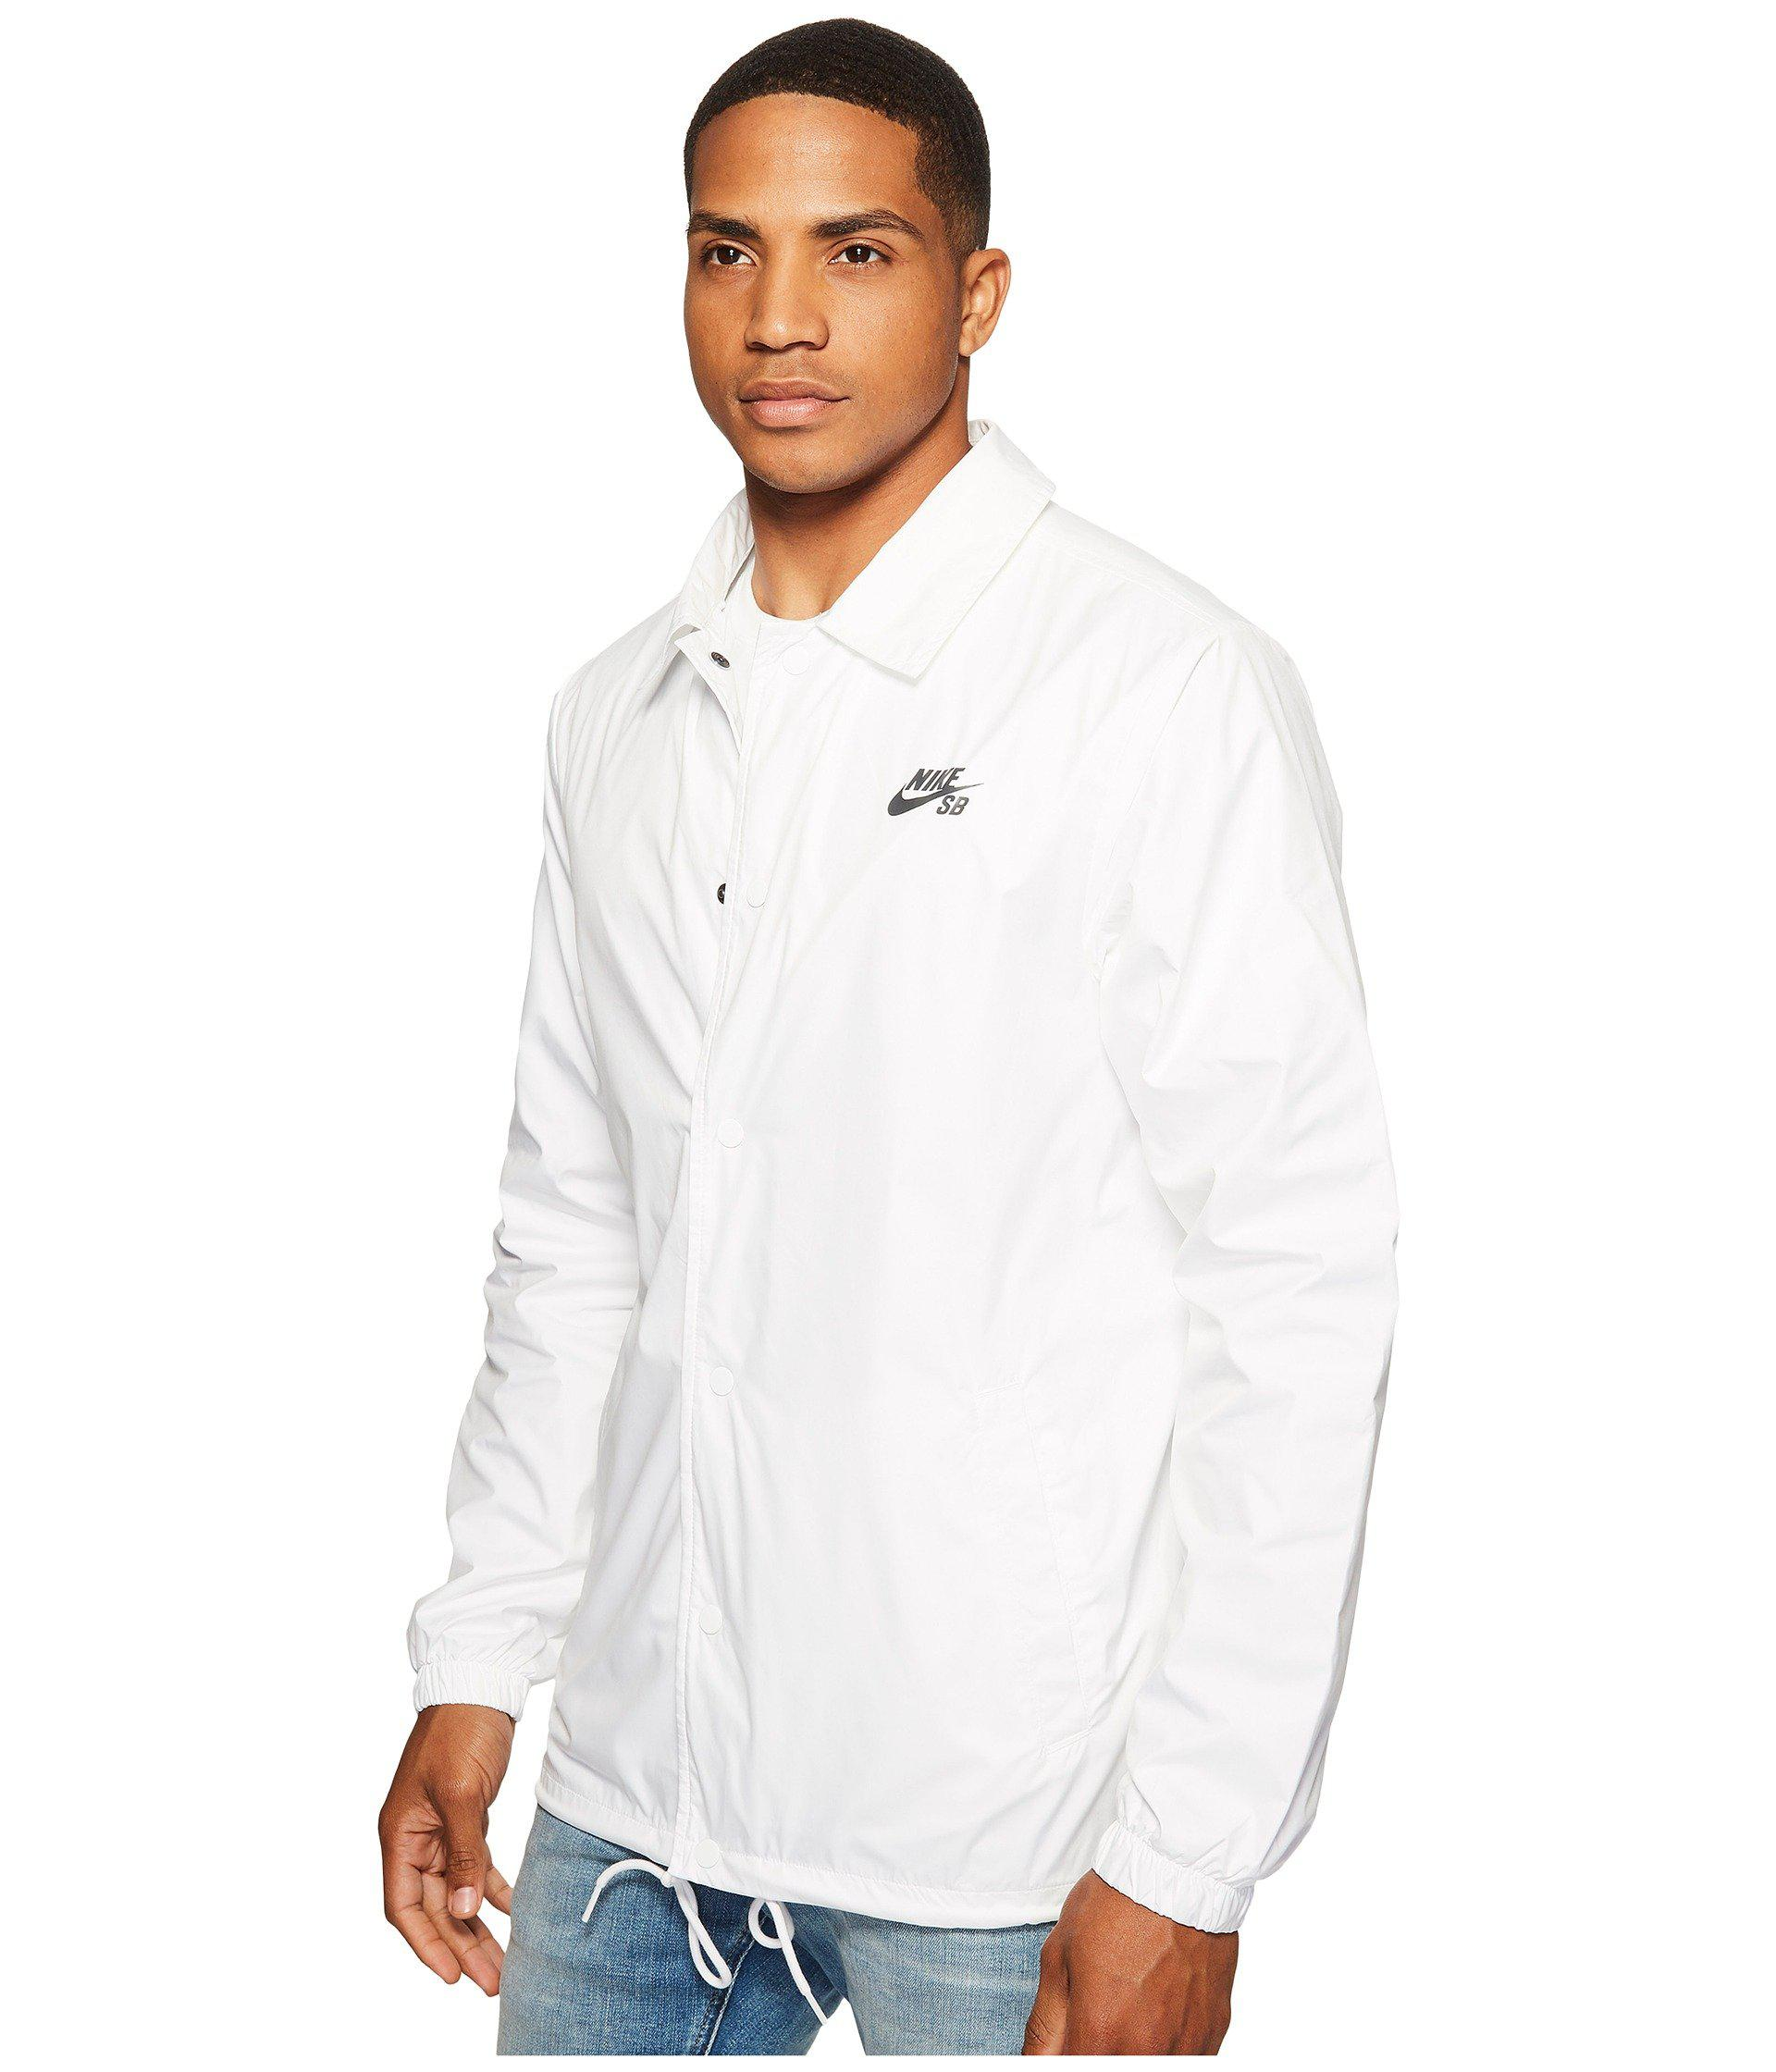 f4fb9fe426f21 Lyst - Nike Sb Shield Coaches Men s Jacket in White for Men - Save  26.15384615384616%